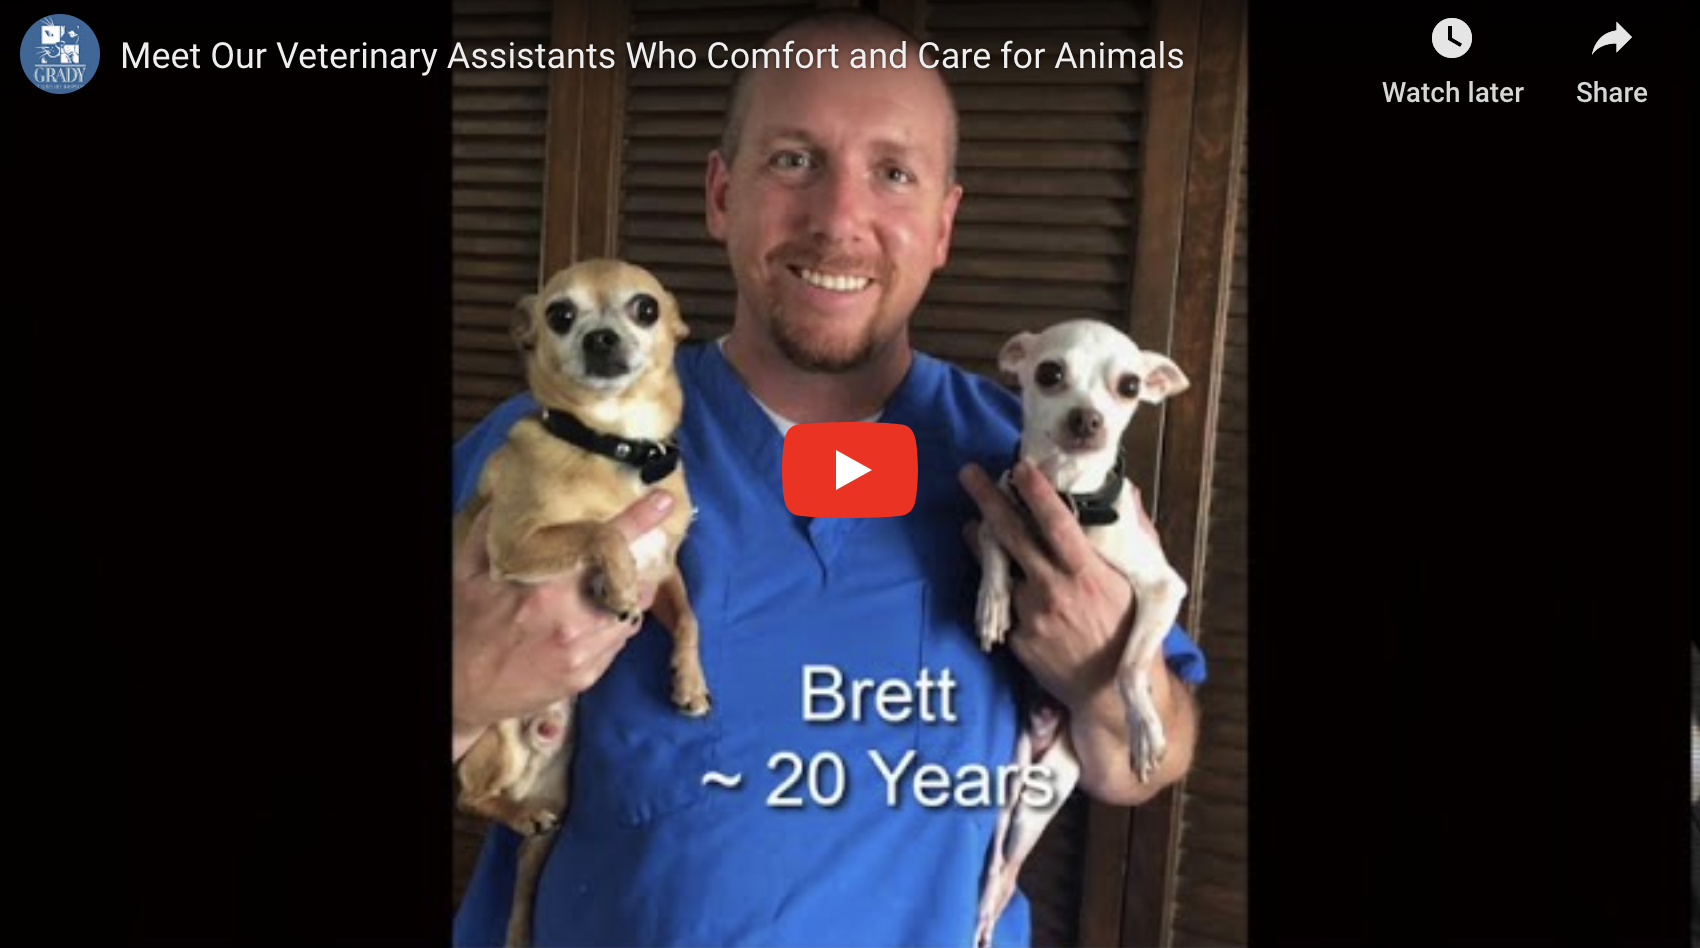 Meet Our Veterinary Assistants Who Comfort and Care for Animals